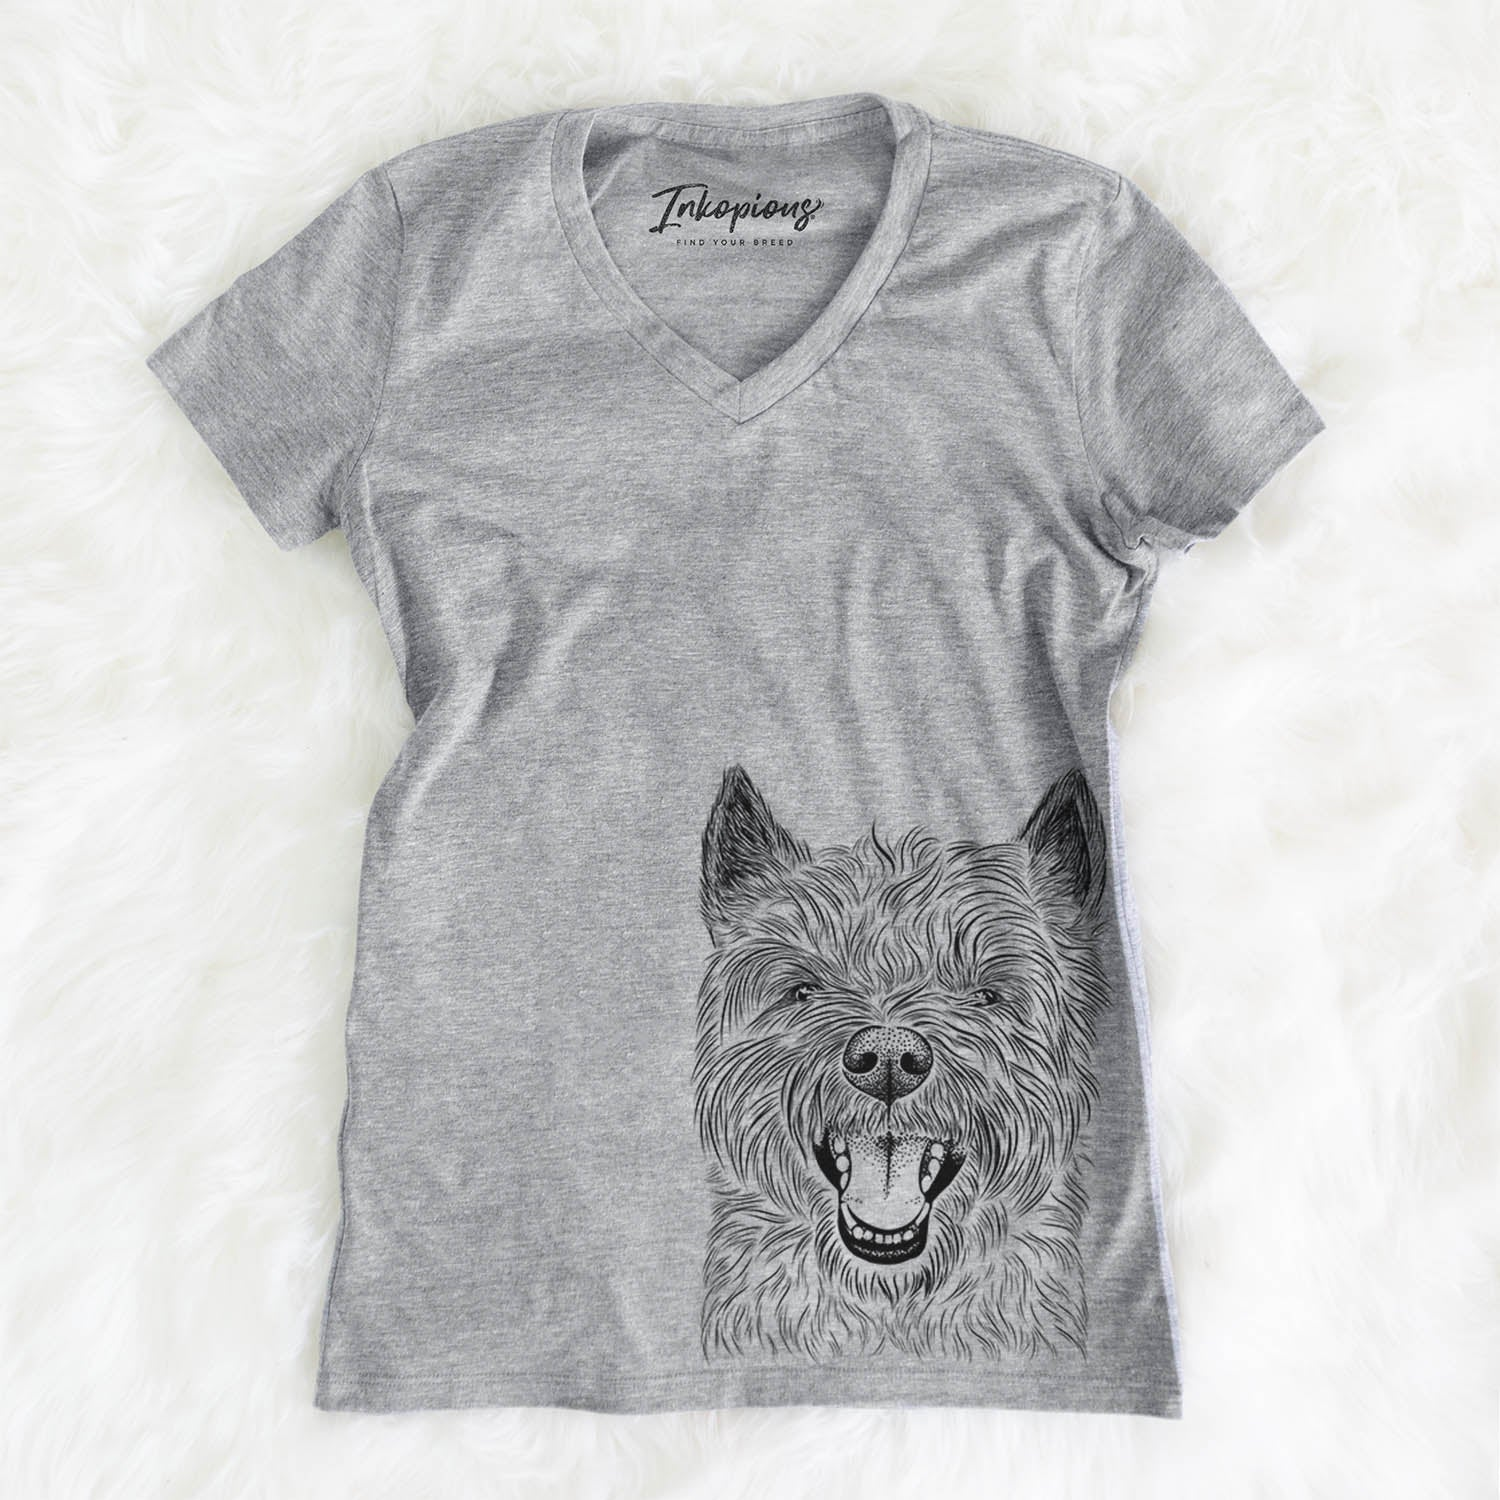 Jeff the Cairn Terrier - Women's Modern Fit V-neck Shirt